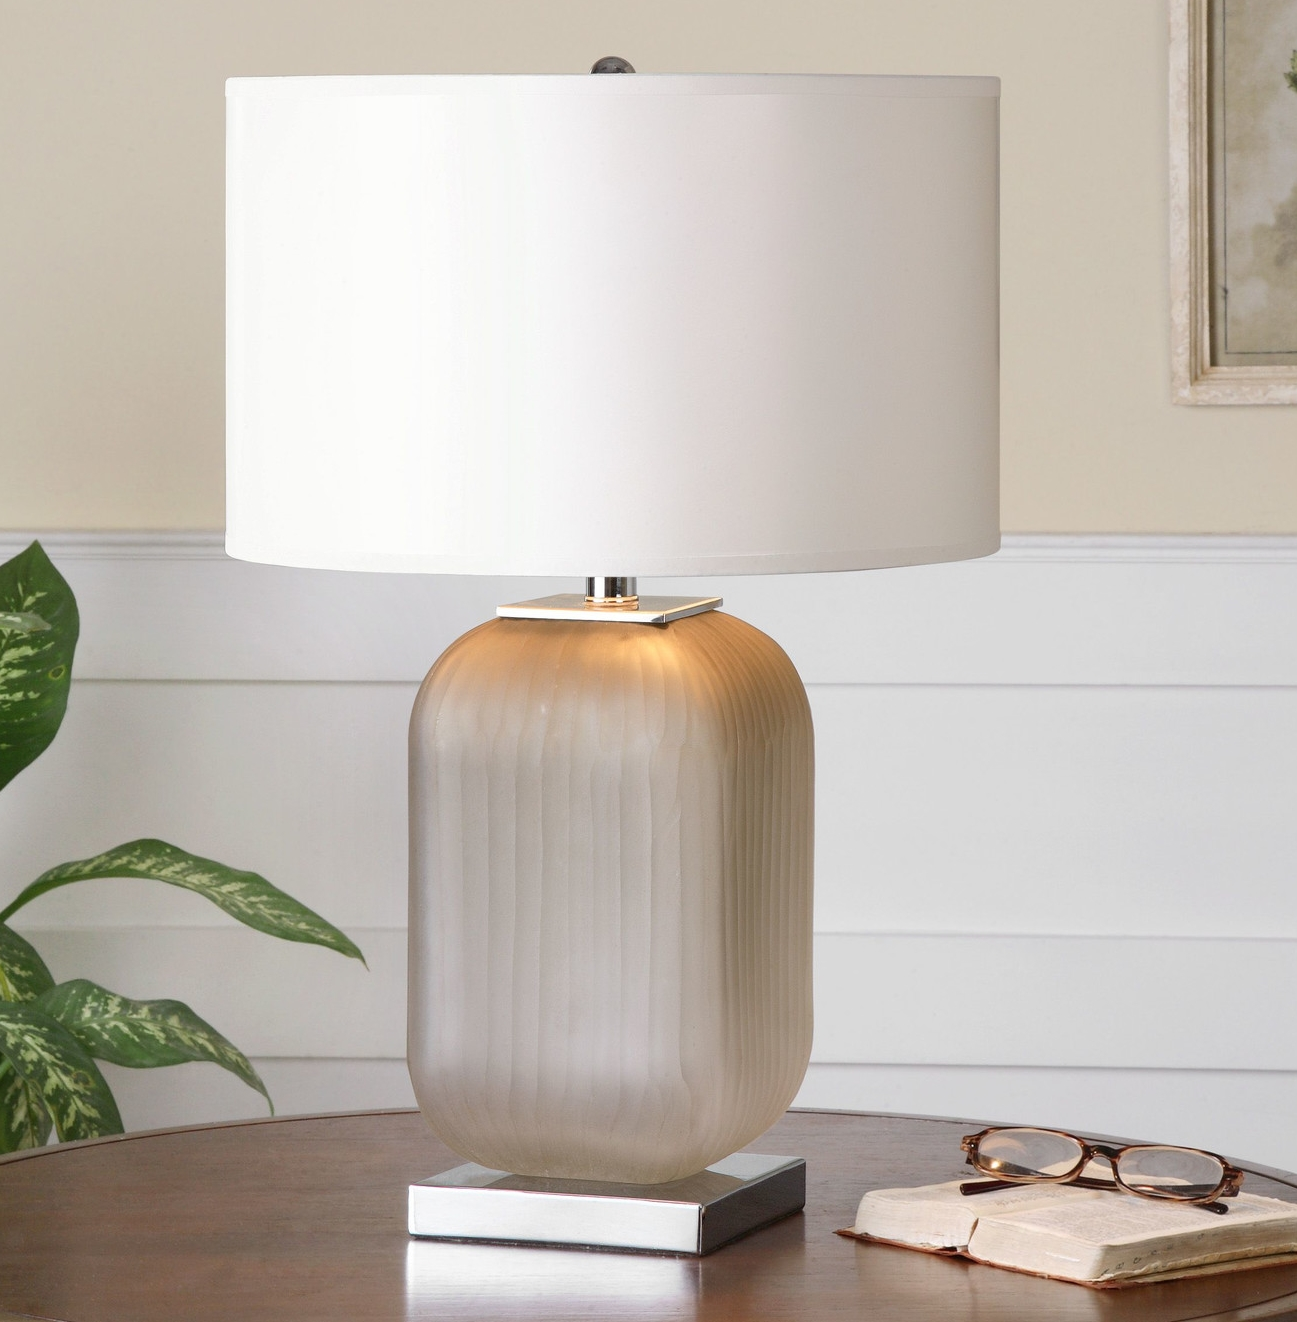 Forino-23.25-H-Table-Lamp-with-Drum-Shade-26189-1.jpg